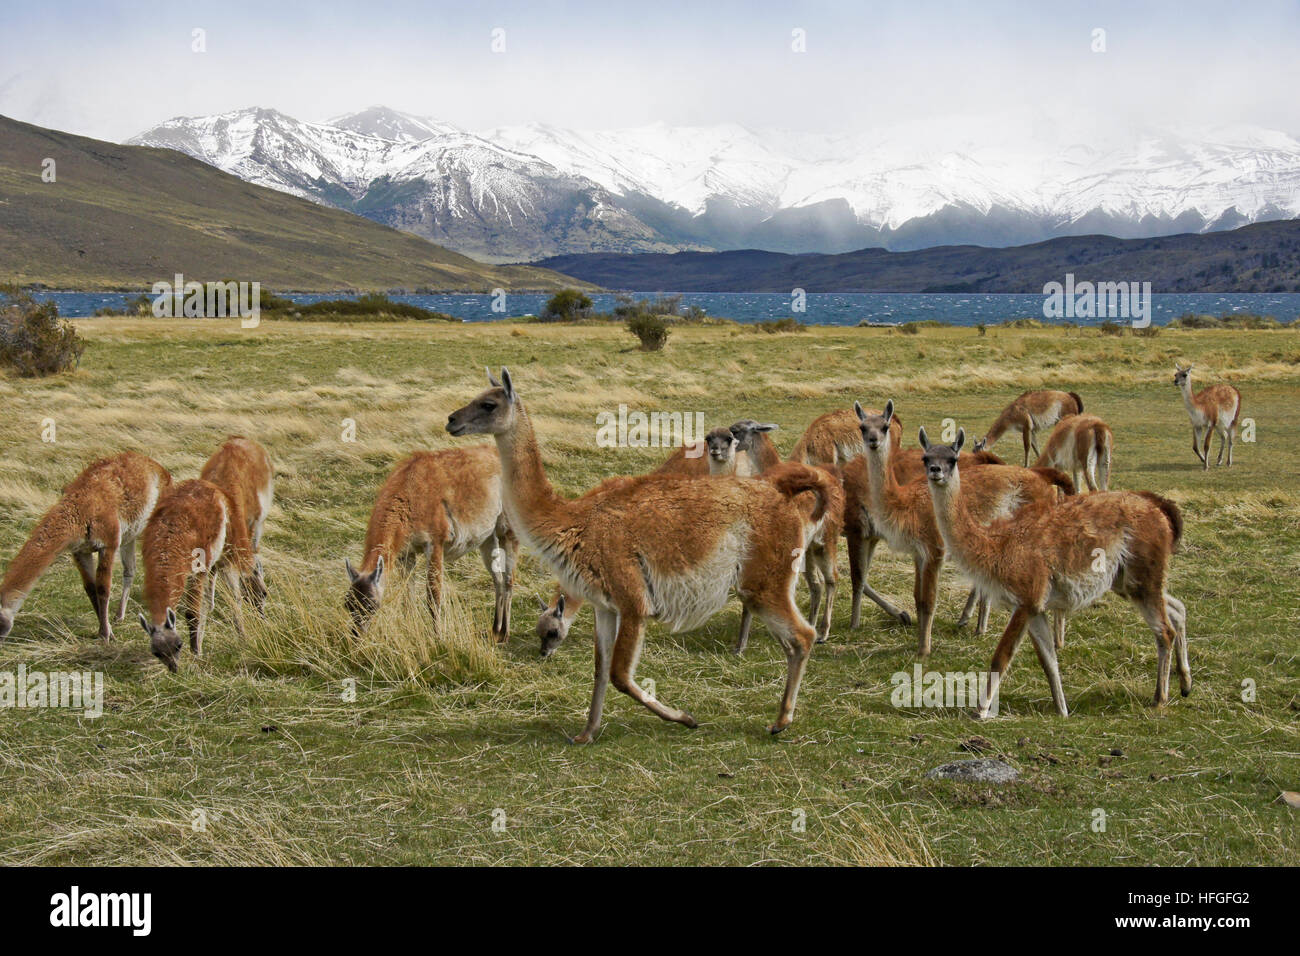 Guanacos grazing in a meadow near Laguna Azul, Torres del Paine NP, Patagonia, Chile - Stock Image